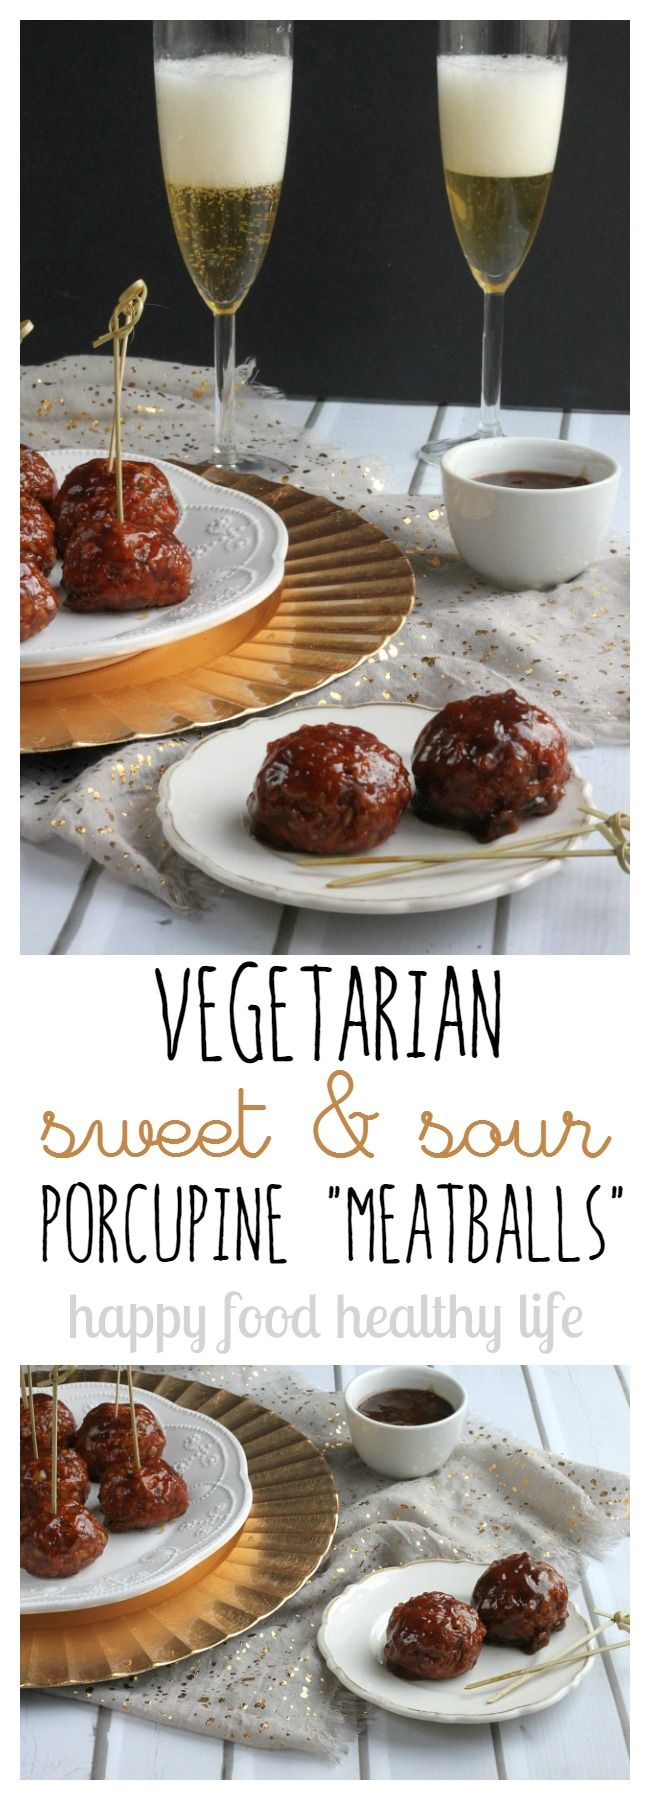 "Vegetarian Sweet & Sour Porcupine ""Meatballs"" - this is hands-down the best…"